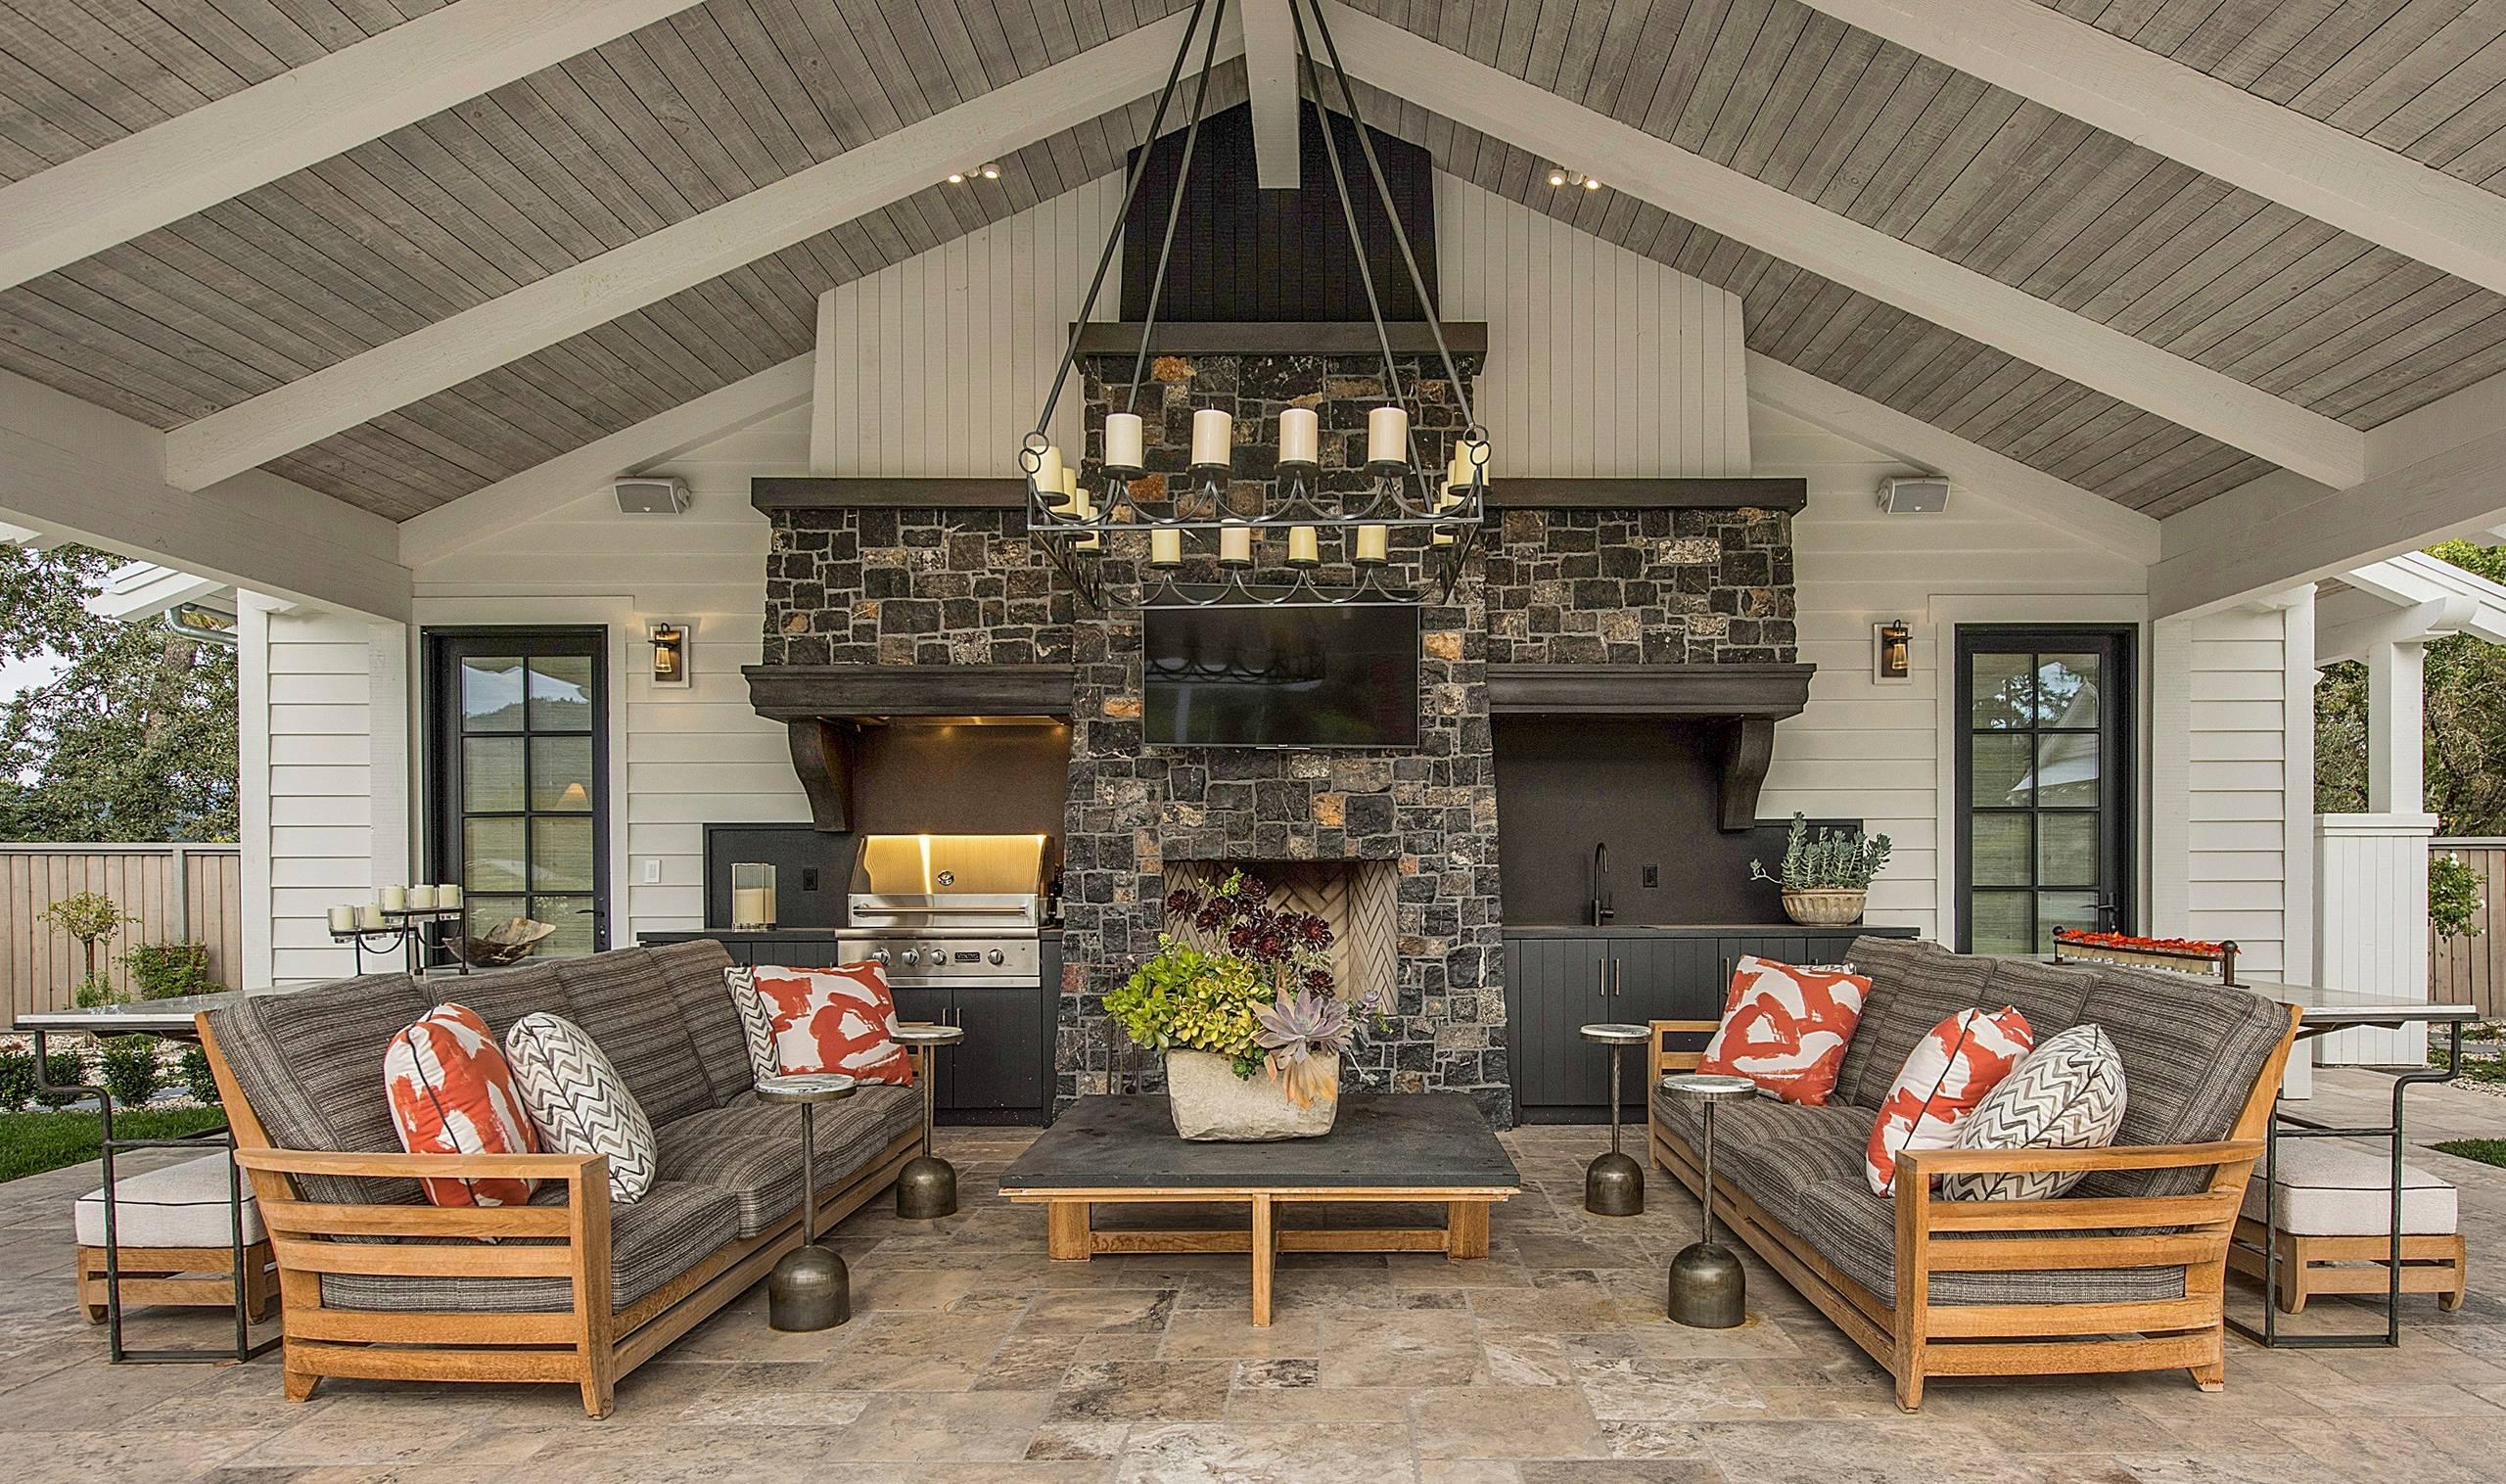 17 Dazzling Farmhouse Patio Designs You Need On Your Deck